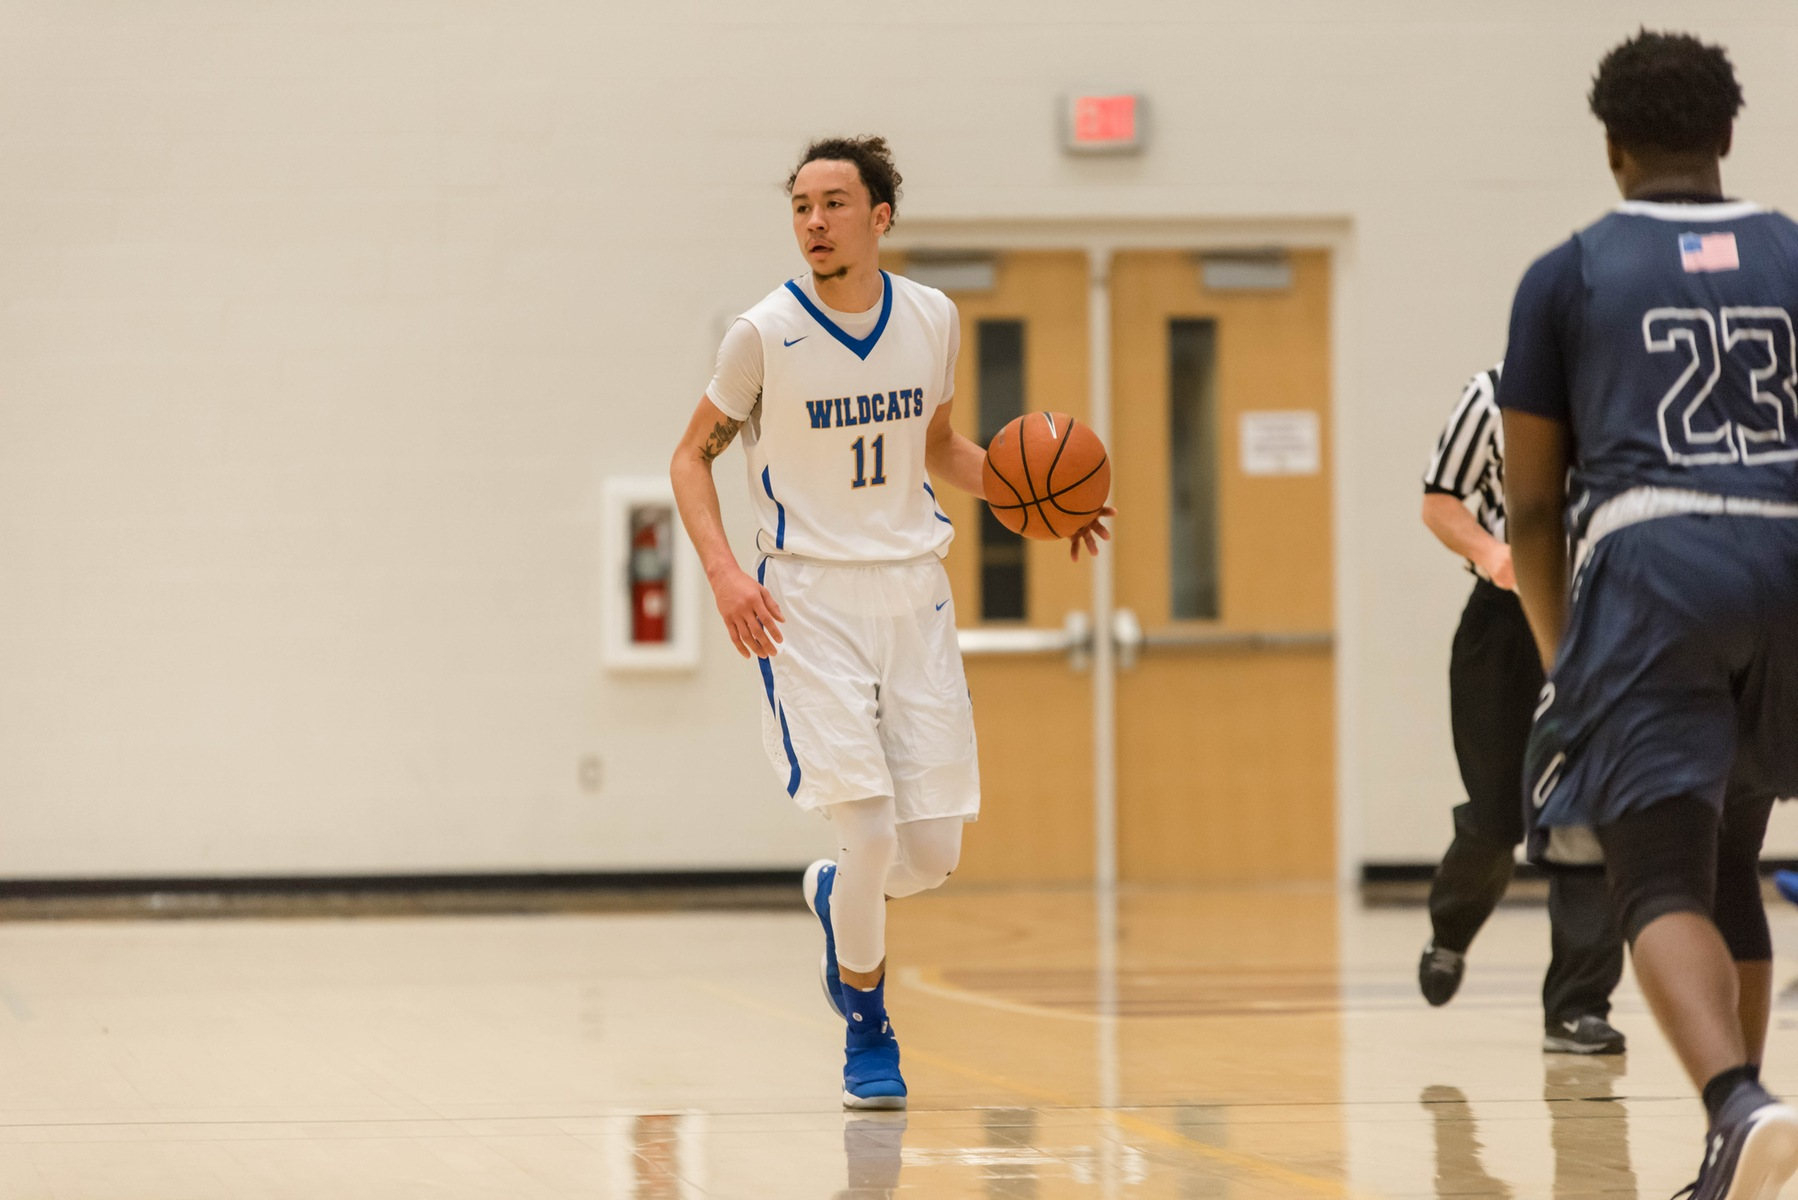 Men's Basketball Opens Season With Conference Win